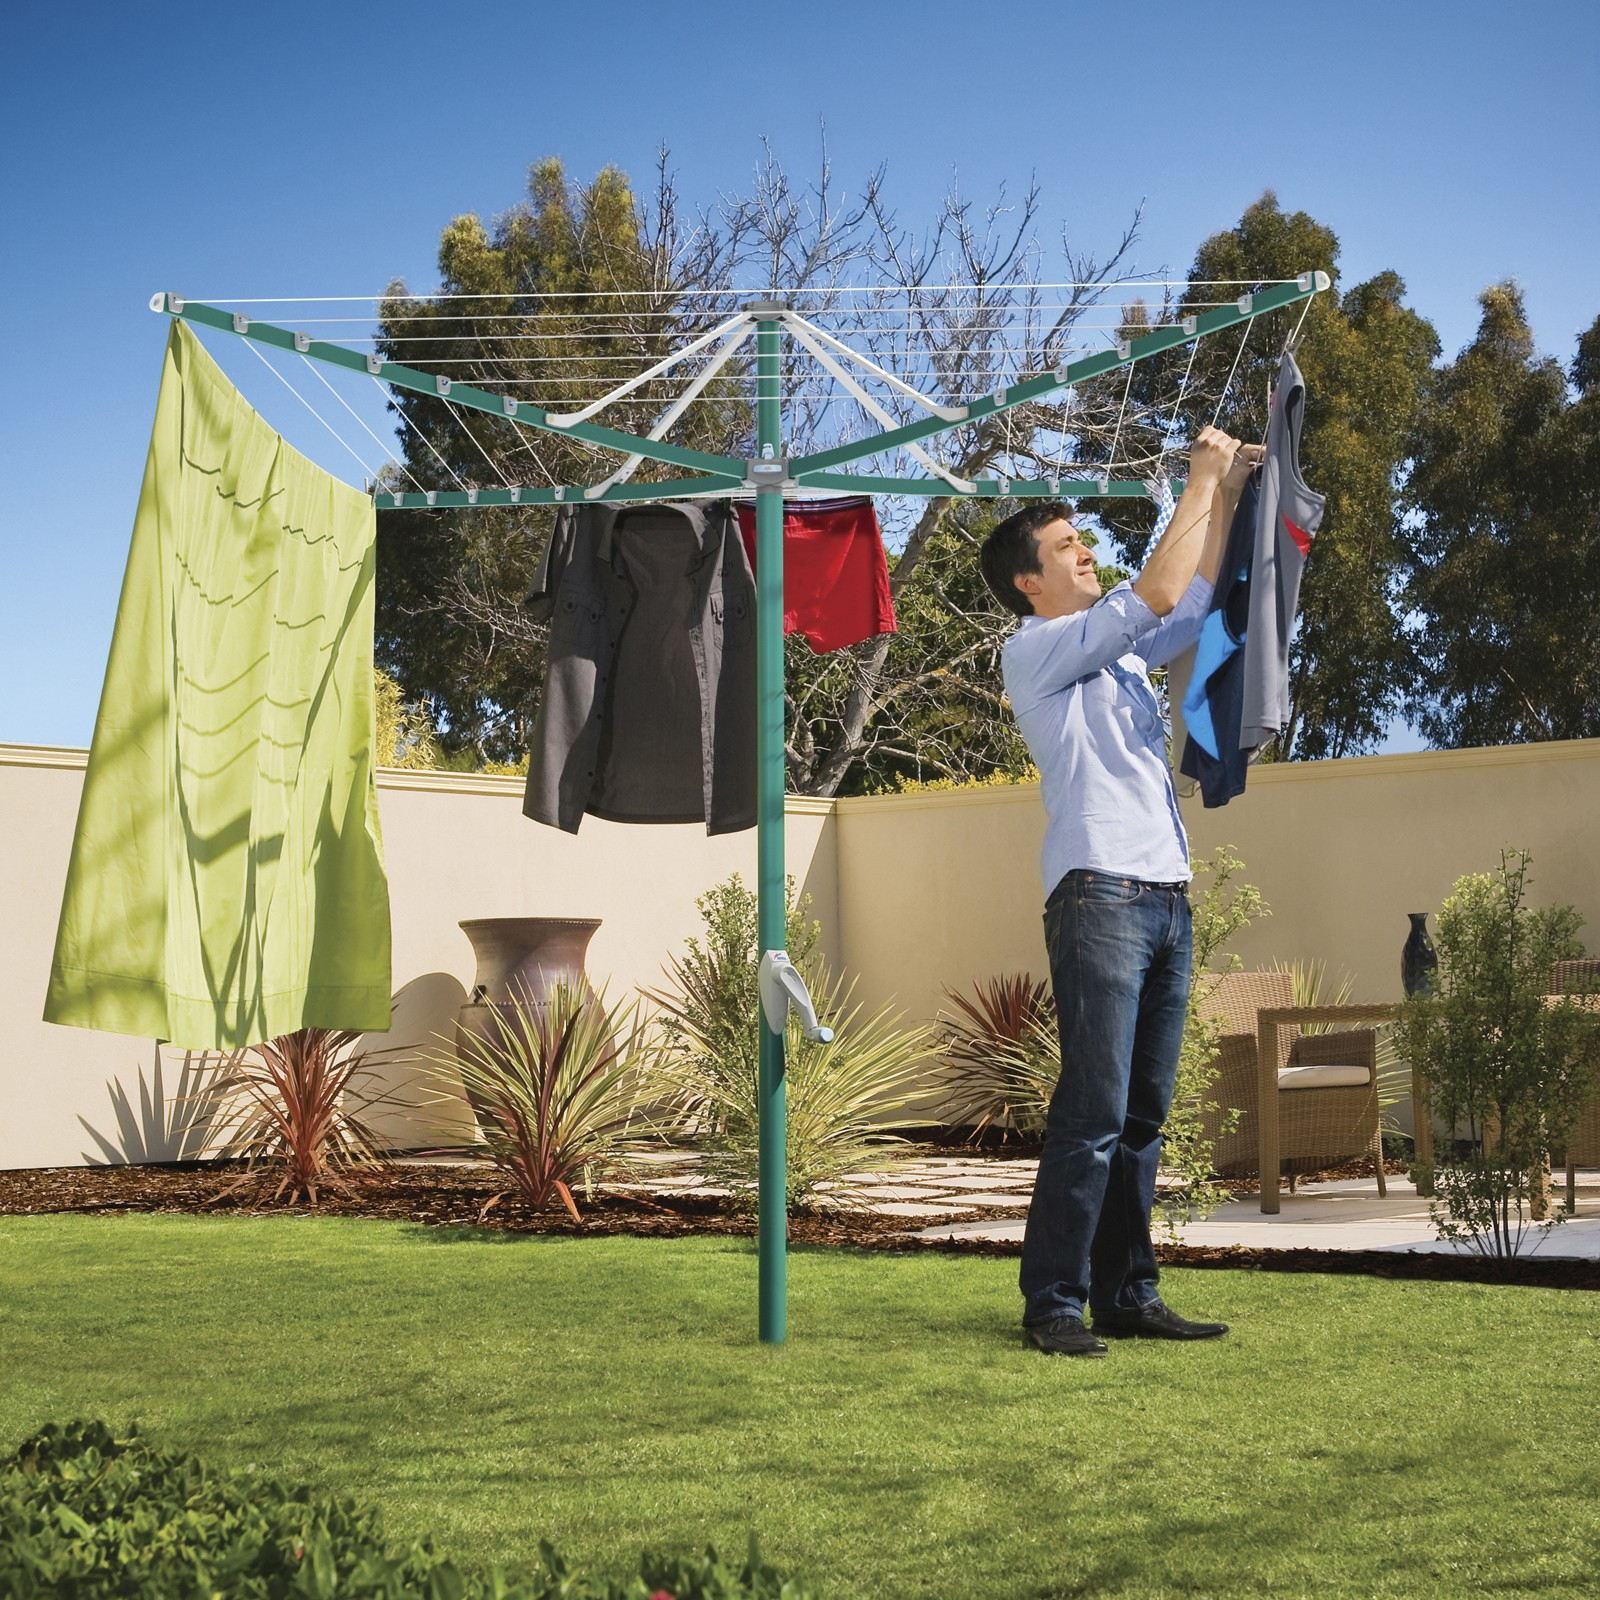 Outdoor Clothes Dryer ~ Hills rotary arm clothes dryer airer outdoor washing